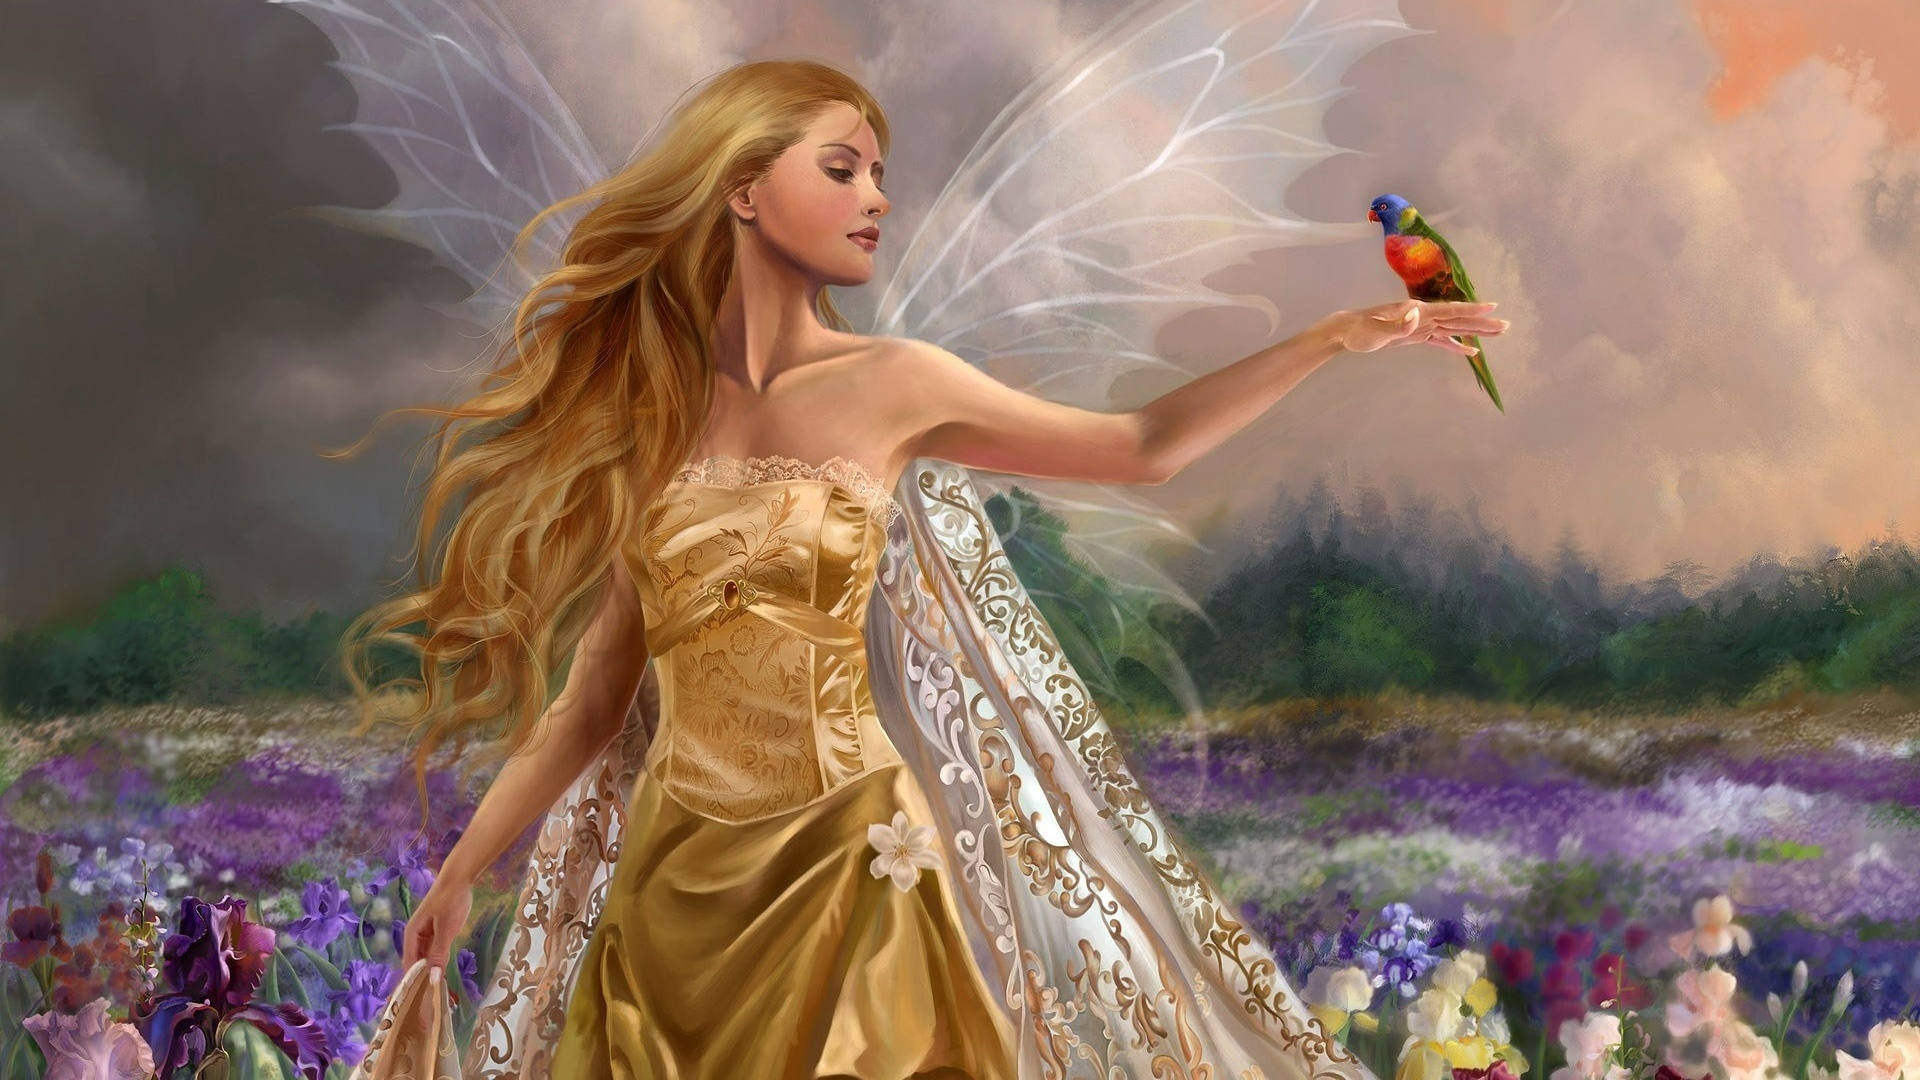 Animated Angel Wallpapers - 1920x1080 - 591074